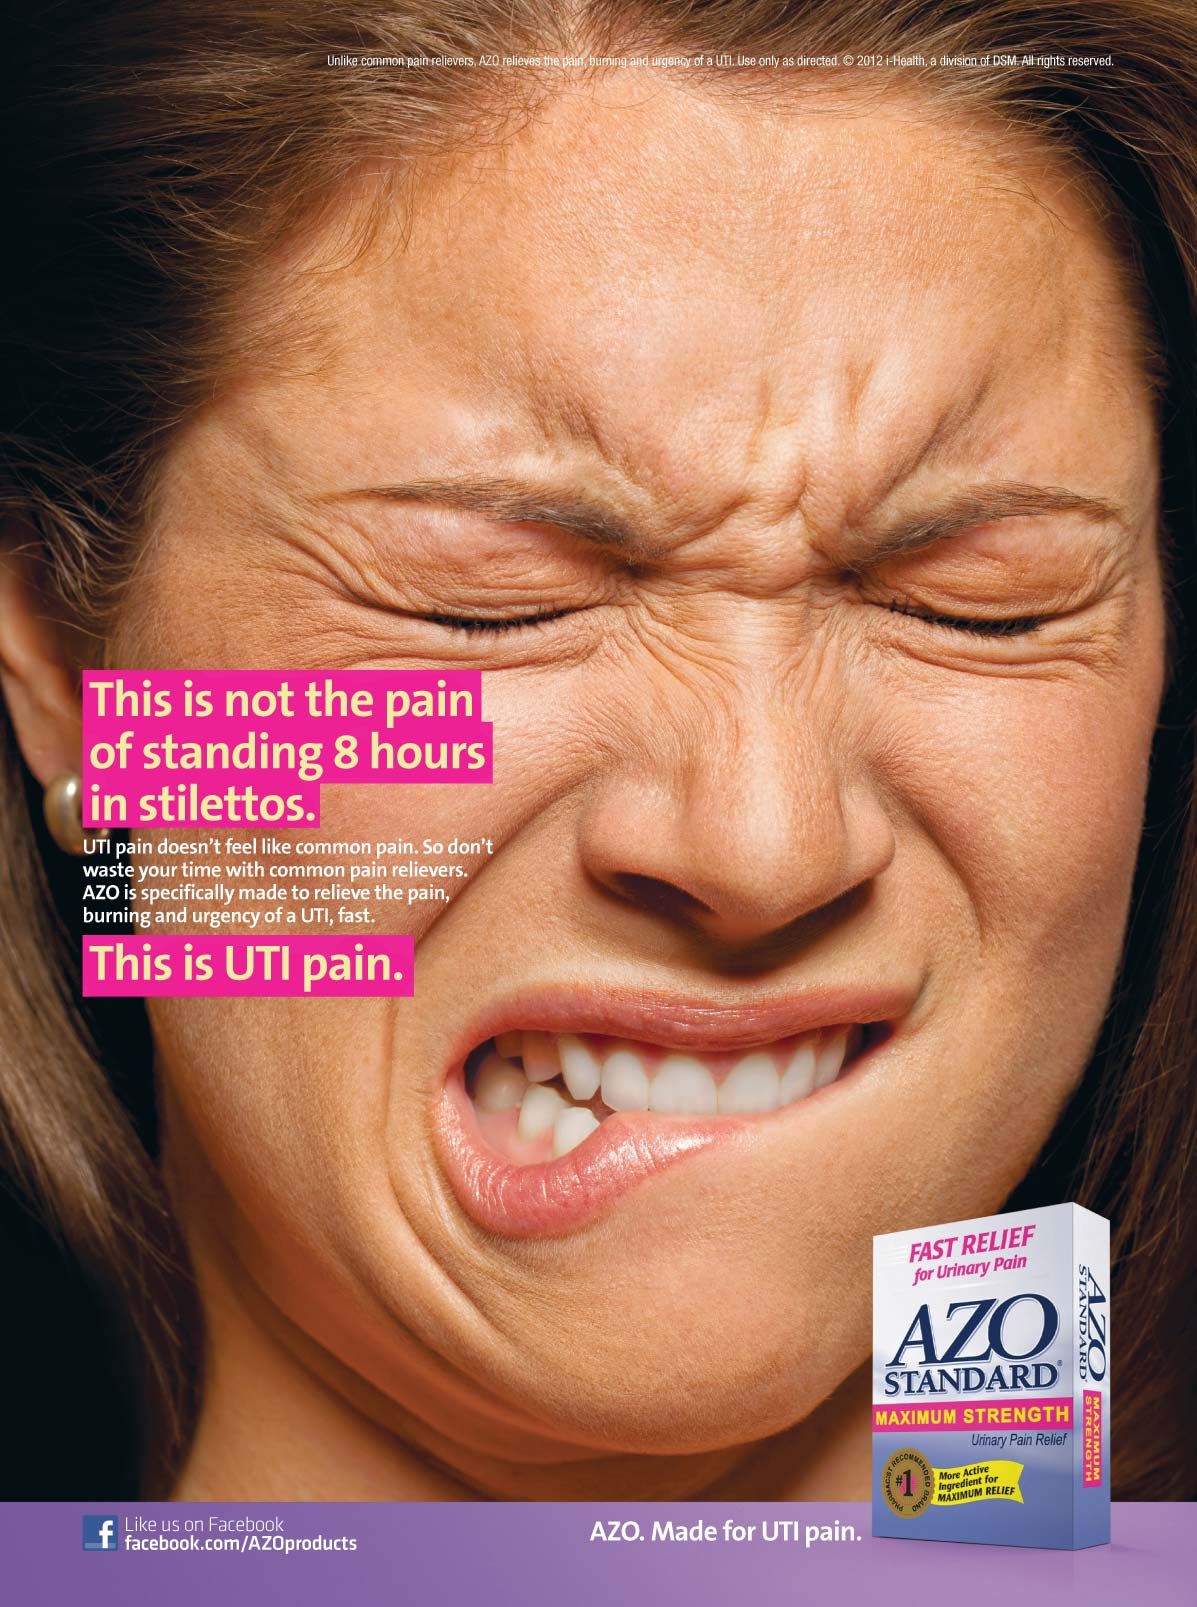 AZO_USWeekly_Apr9_adjusted.jpg